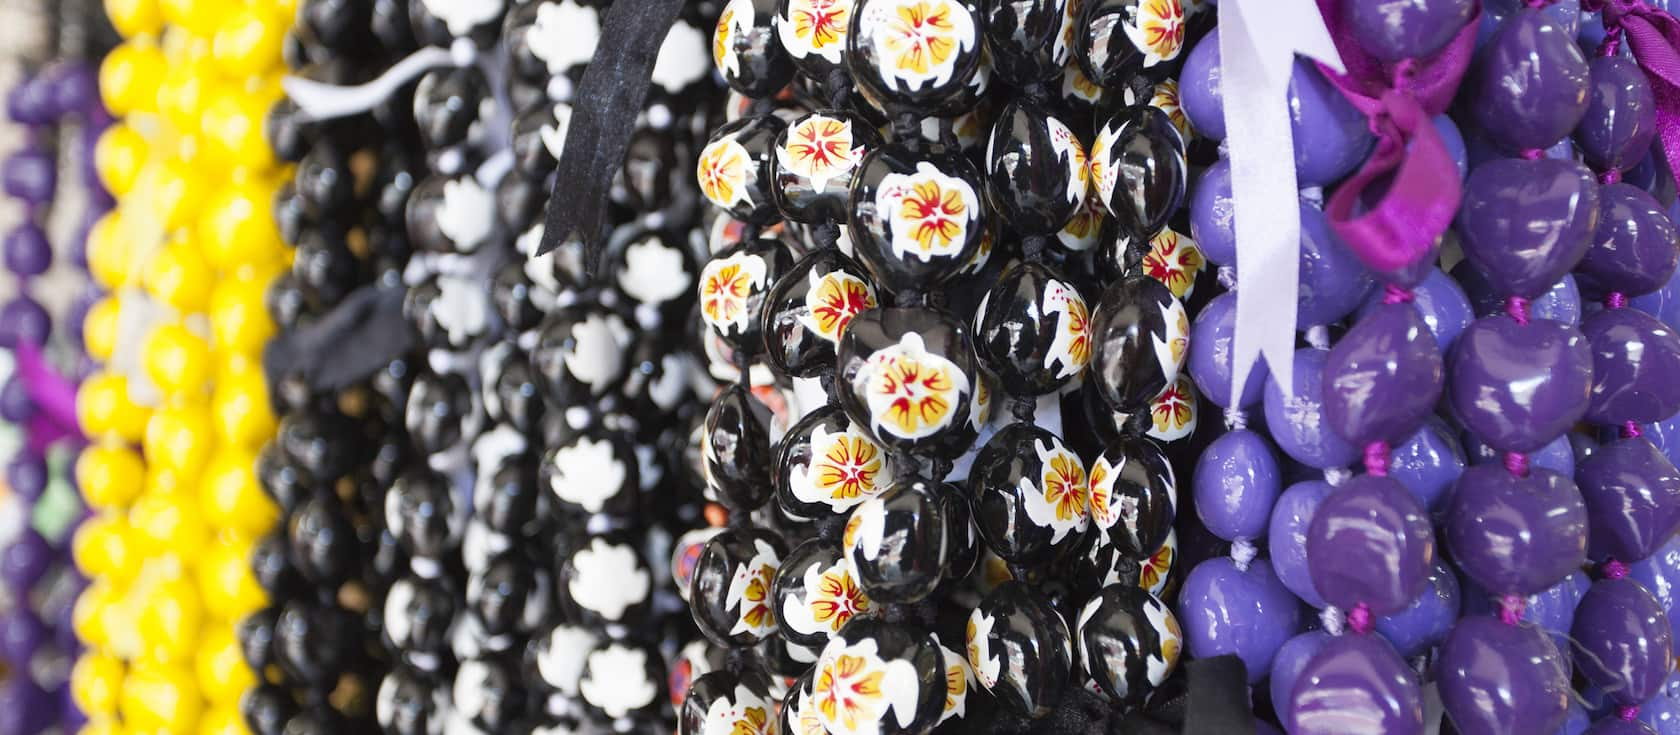 A display of beaded lei necklaces